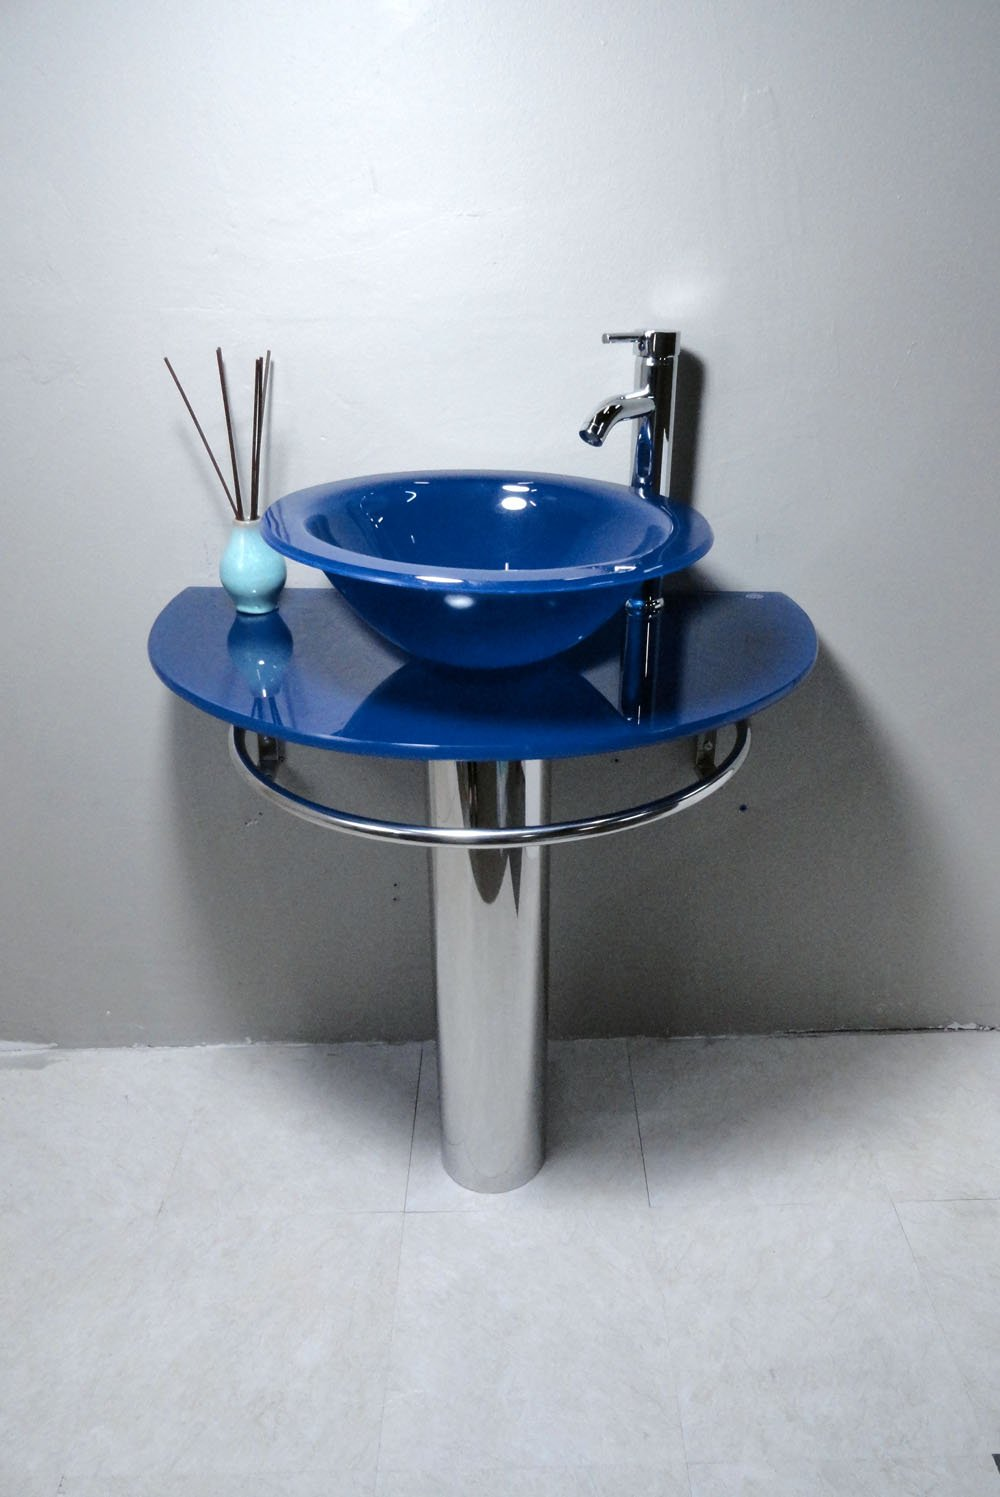 Bathroom Vanities Pedestal Glass Blue Sink Combo W Faucet - - Amazon.com